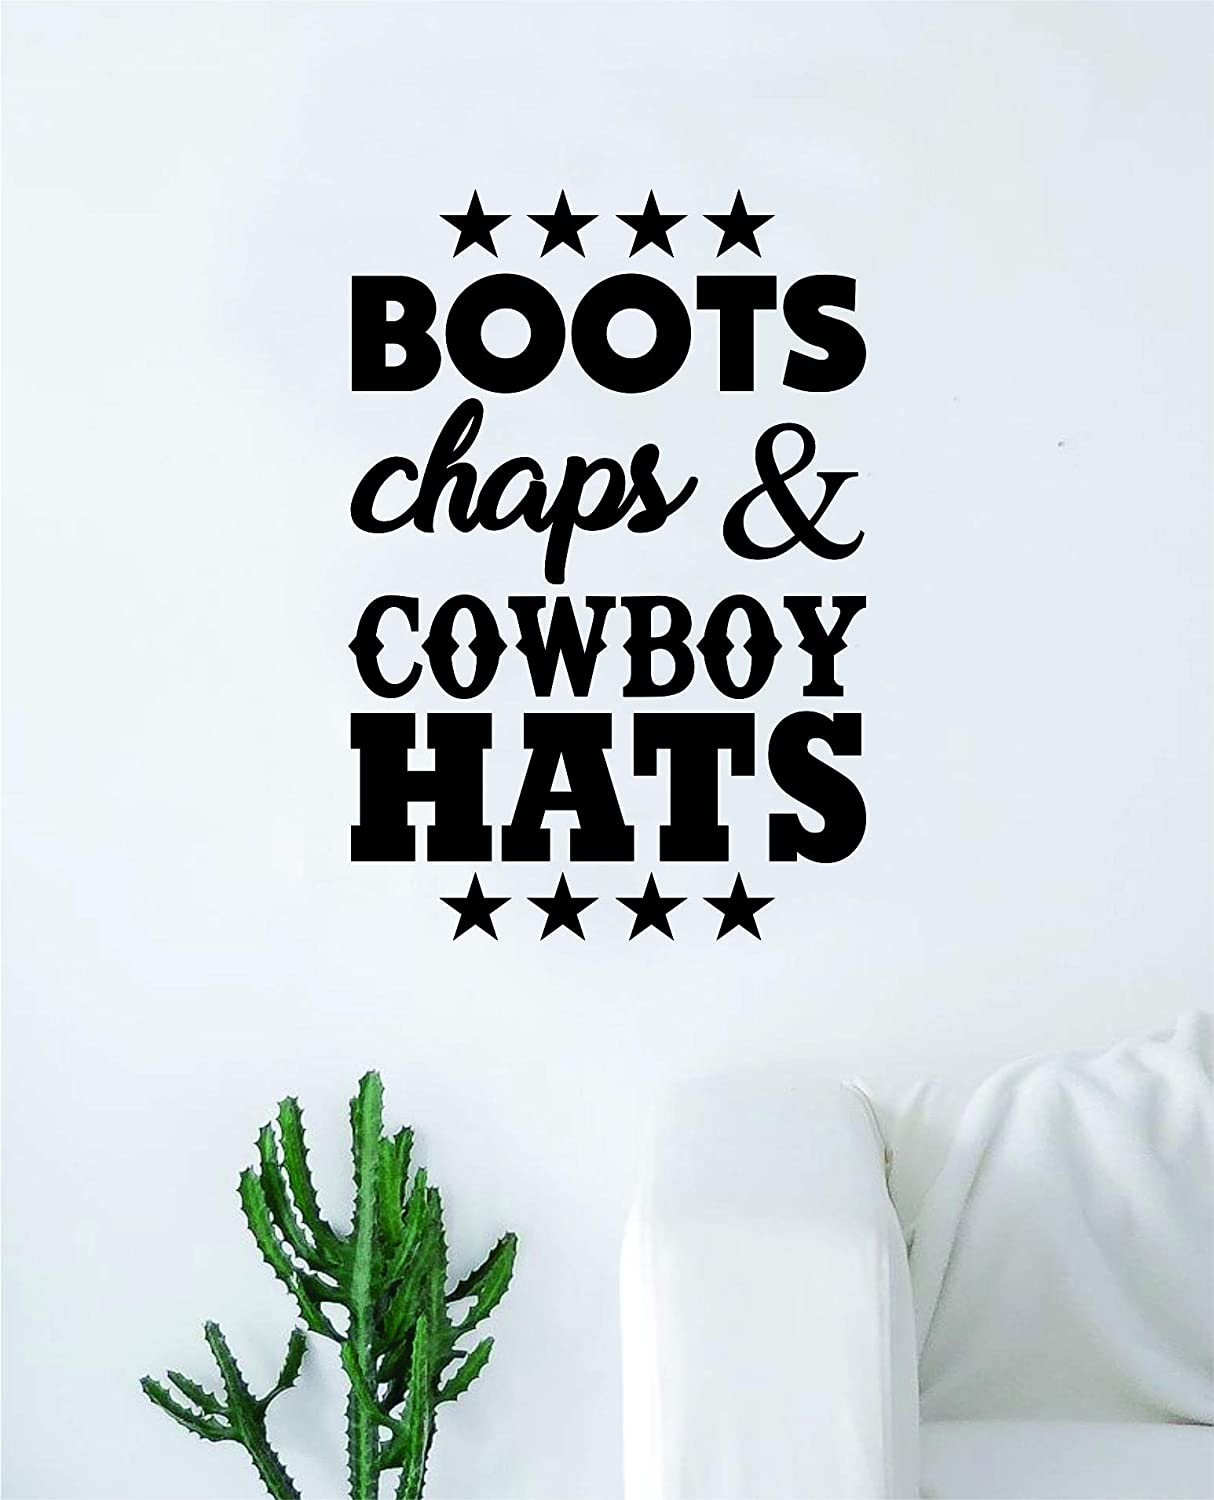 Boots Chaps and Cowboy Hats Original Wall Decal Sticker Vinyl Art Bedroom Living Room Decor Decoration Teen Quote Inspirational Kids Boy Girl Teen Country America Cowgirl Horse Rodeo Wild West